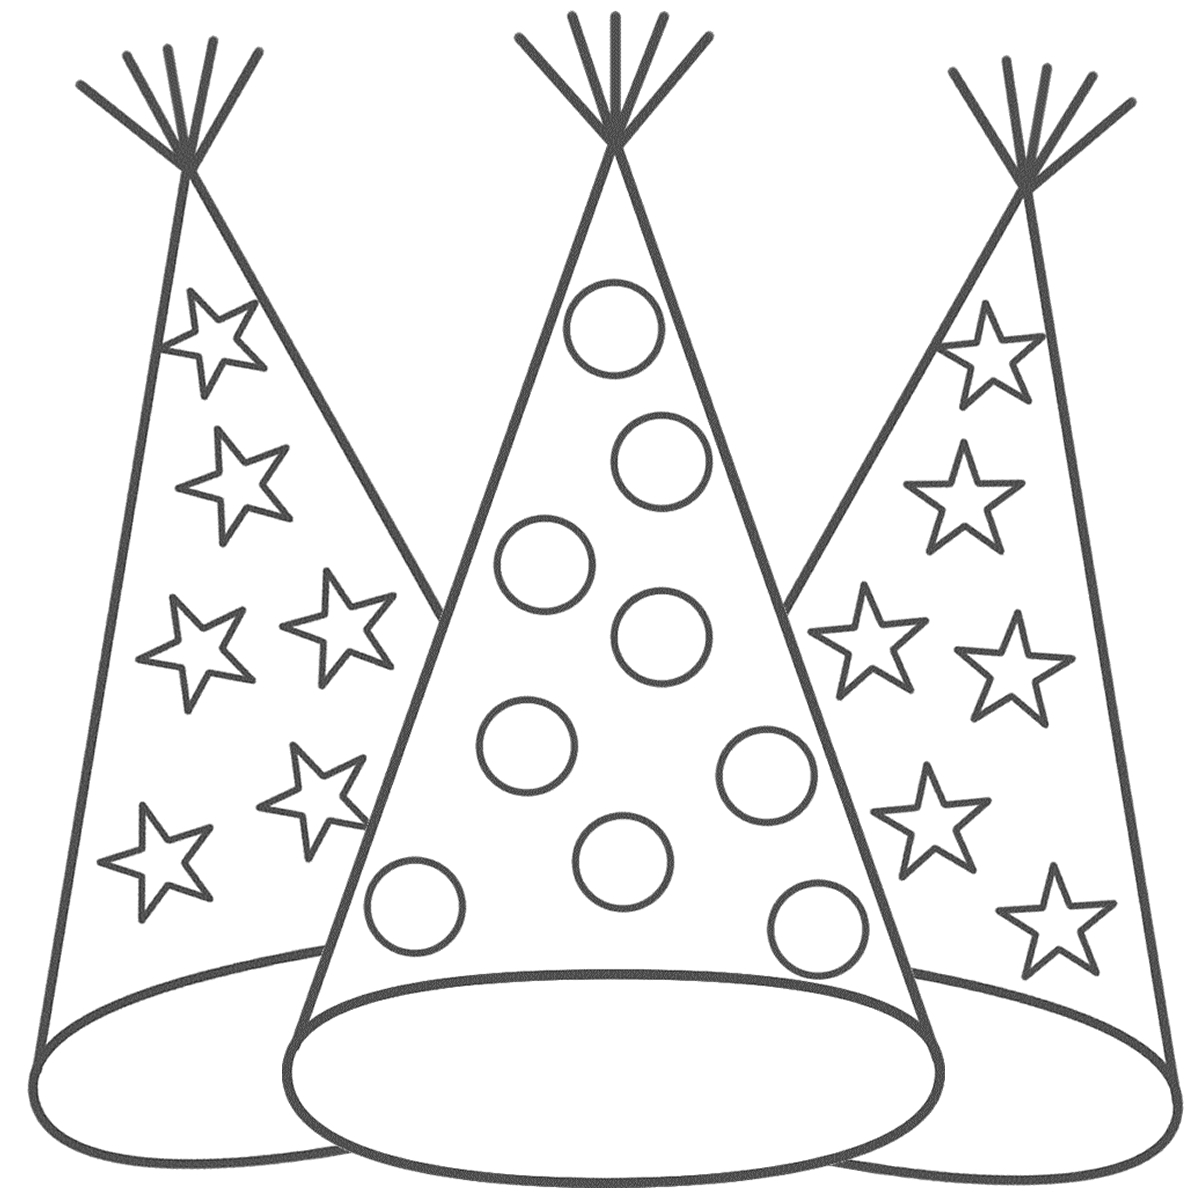 birthday hat coloring page ; happy-birthday-hats-coloring-sheets-1000-images-about-coloring-pages-on-pinterest-coloring-pumpkin